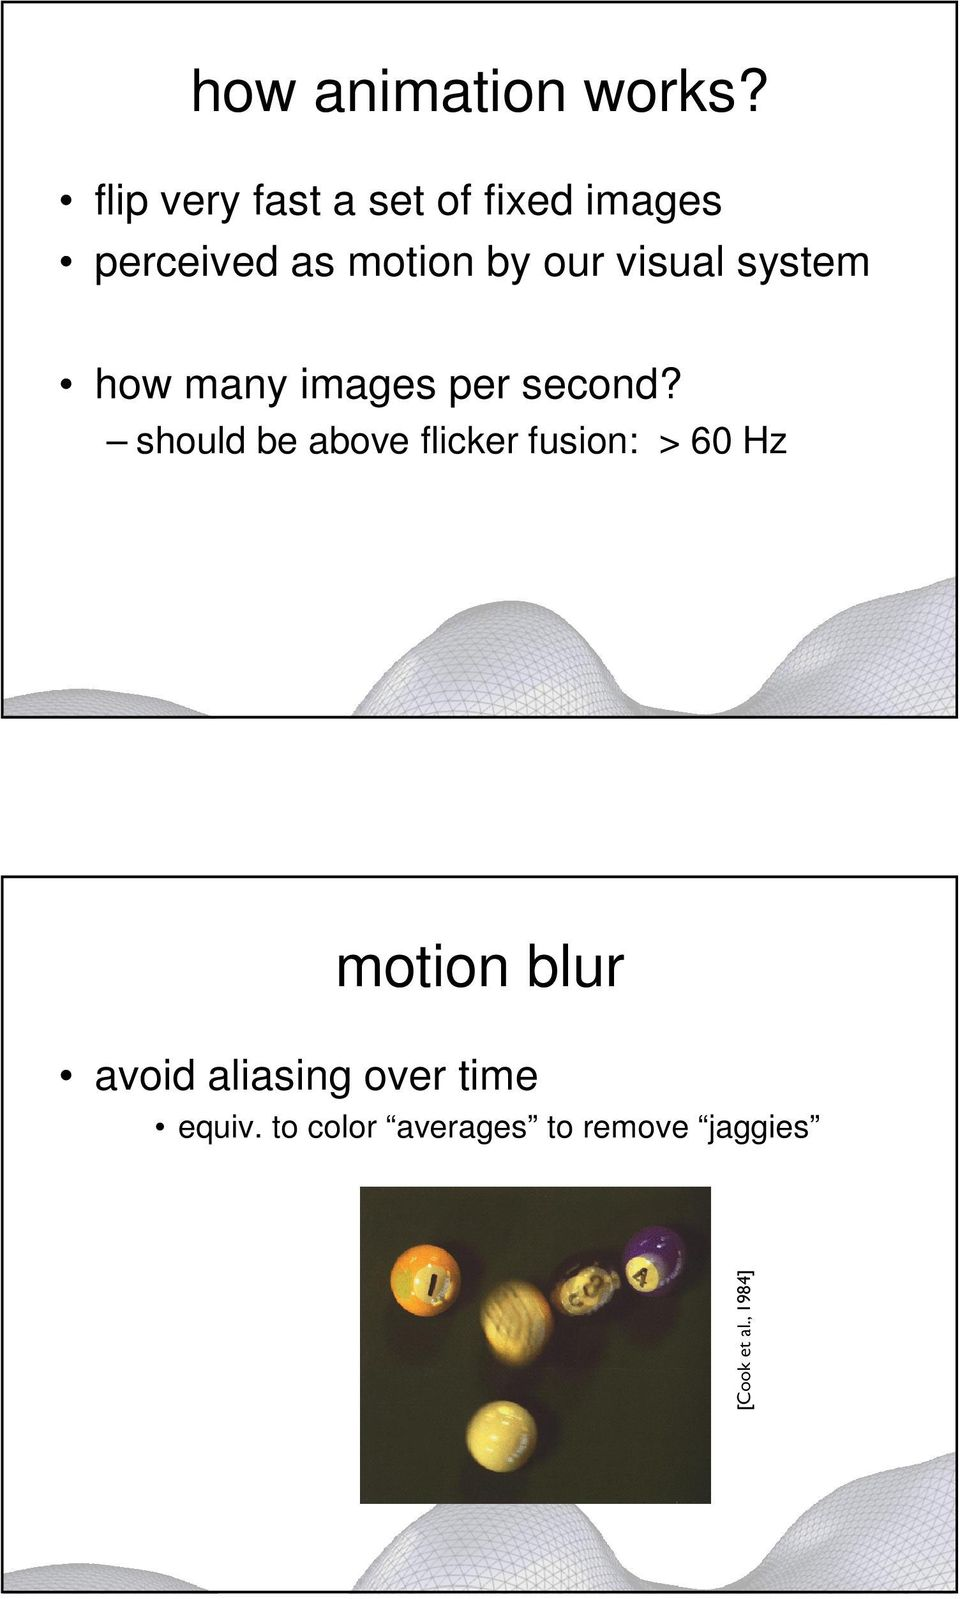 visual system how many images per second?